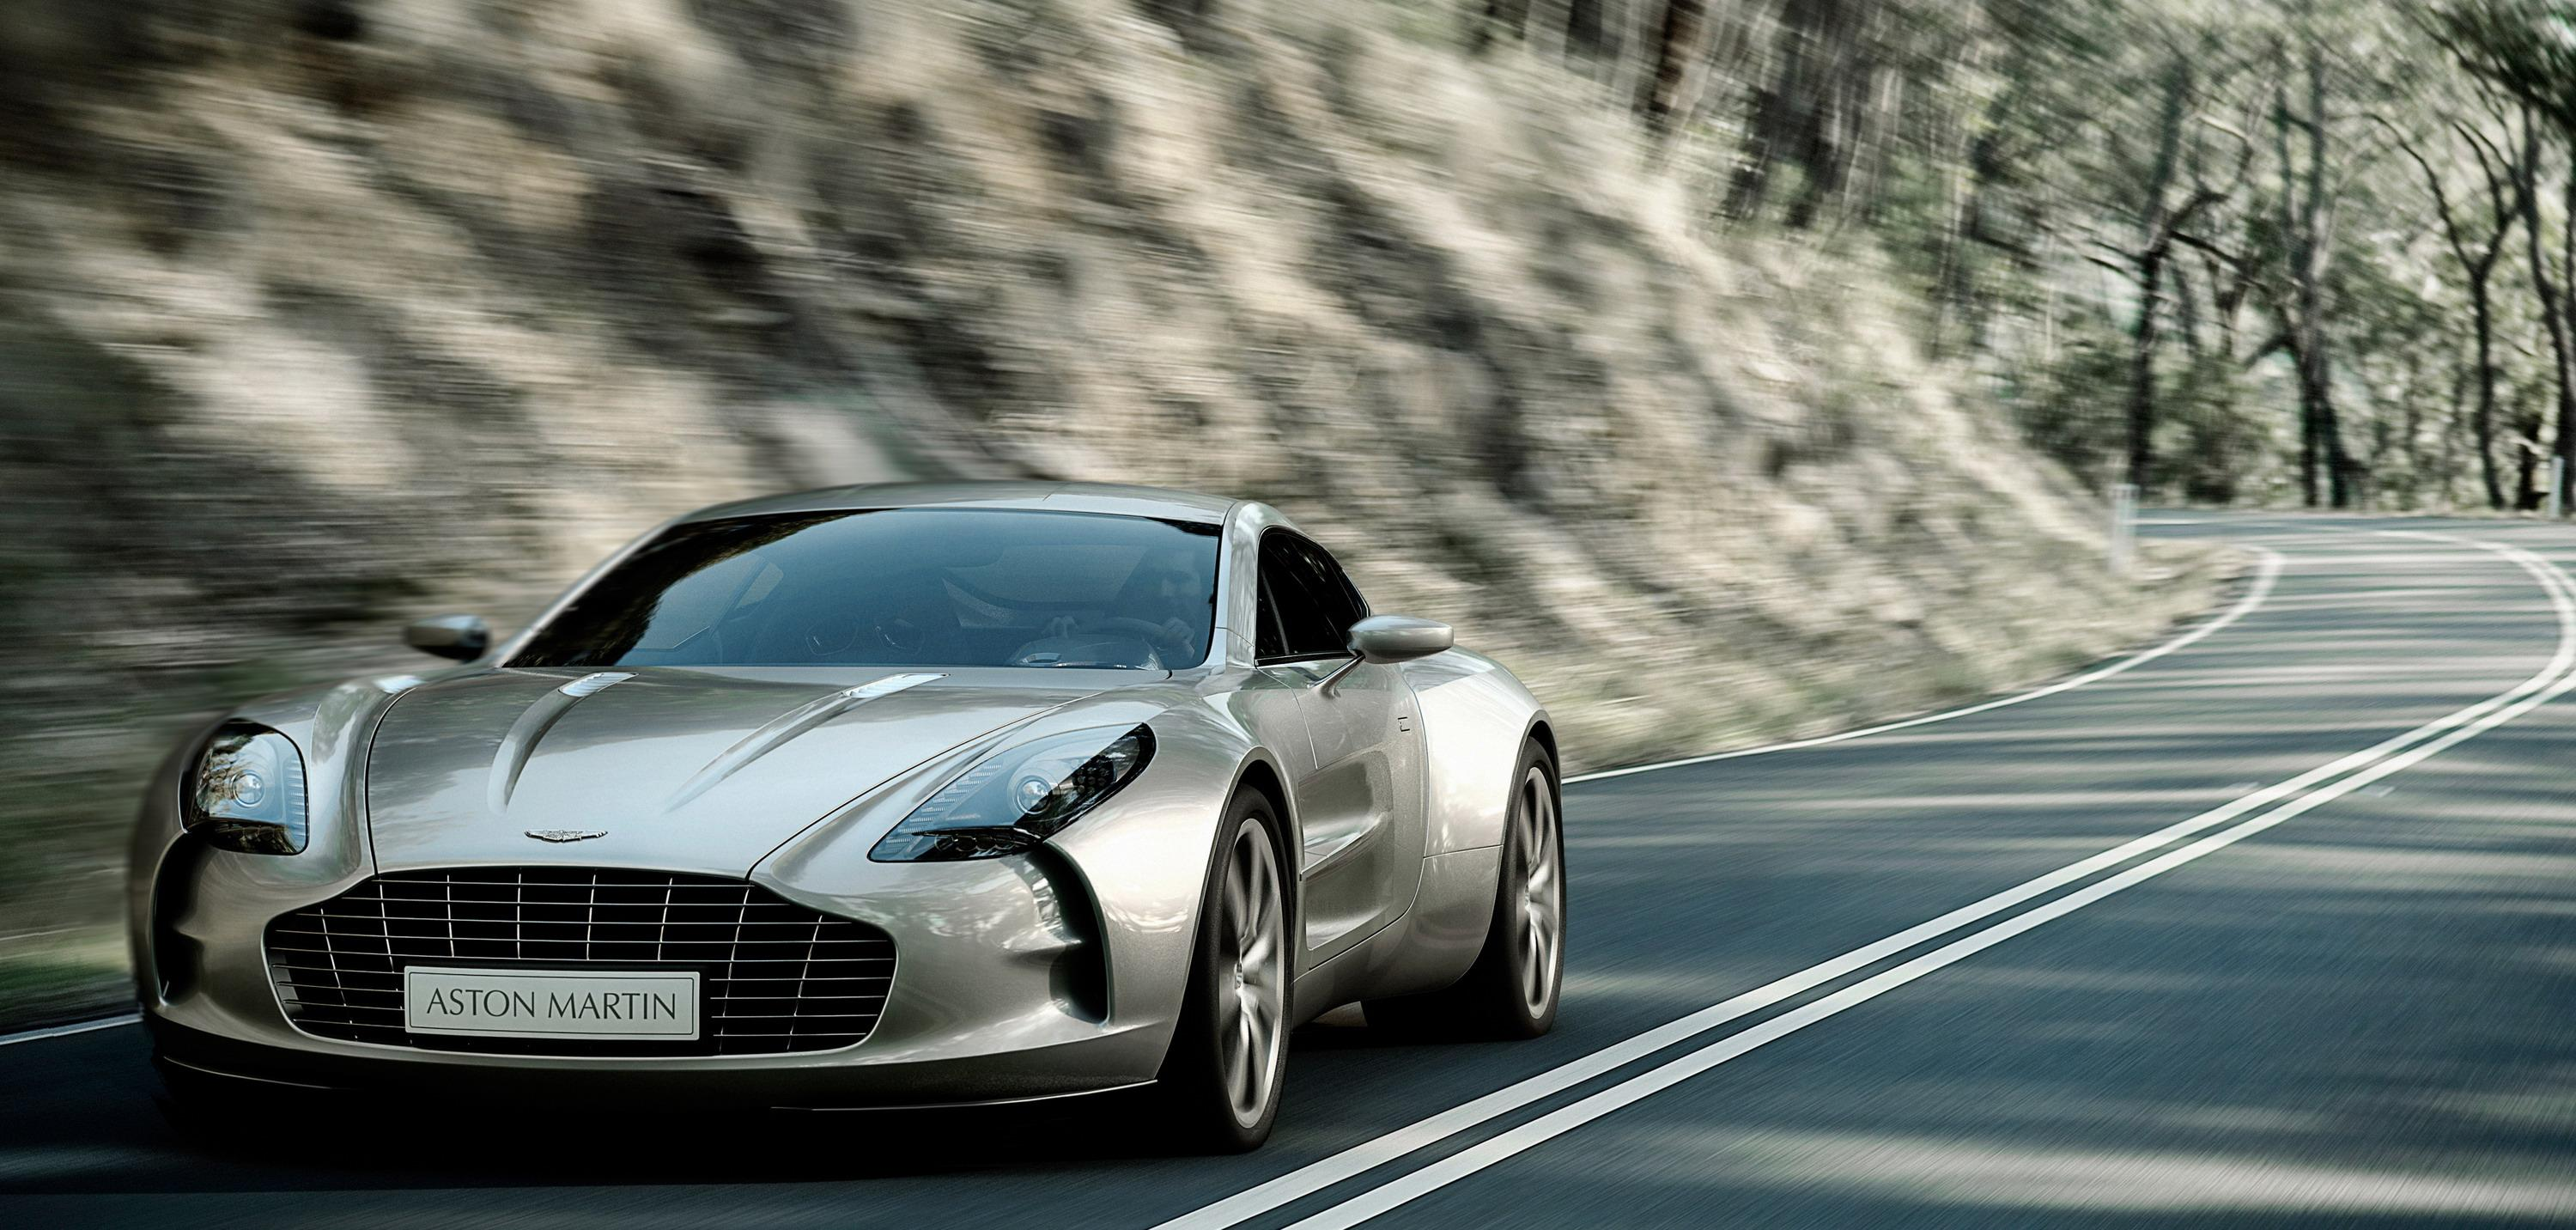 2012 Aston Martin One 77 | Top Speed. »